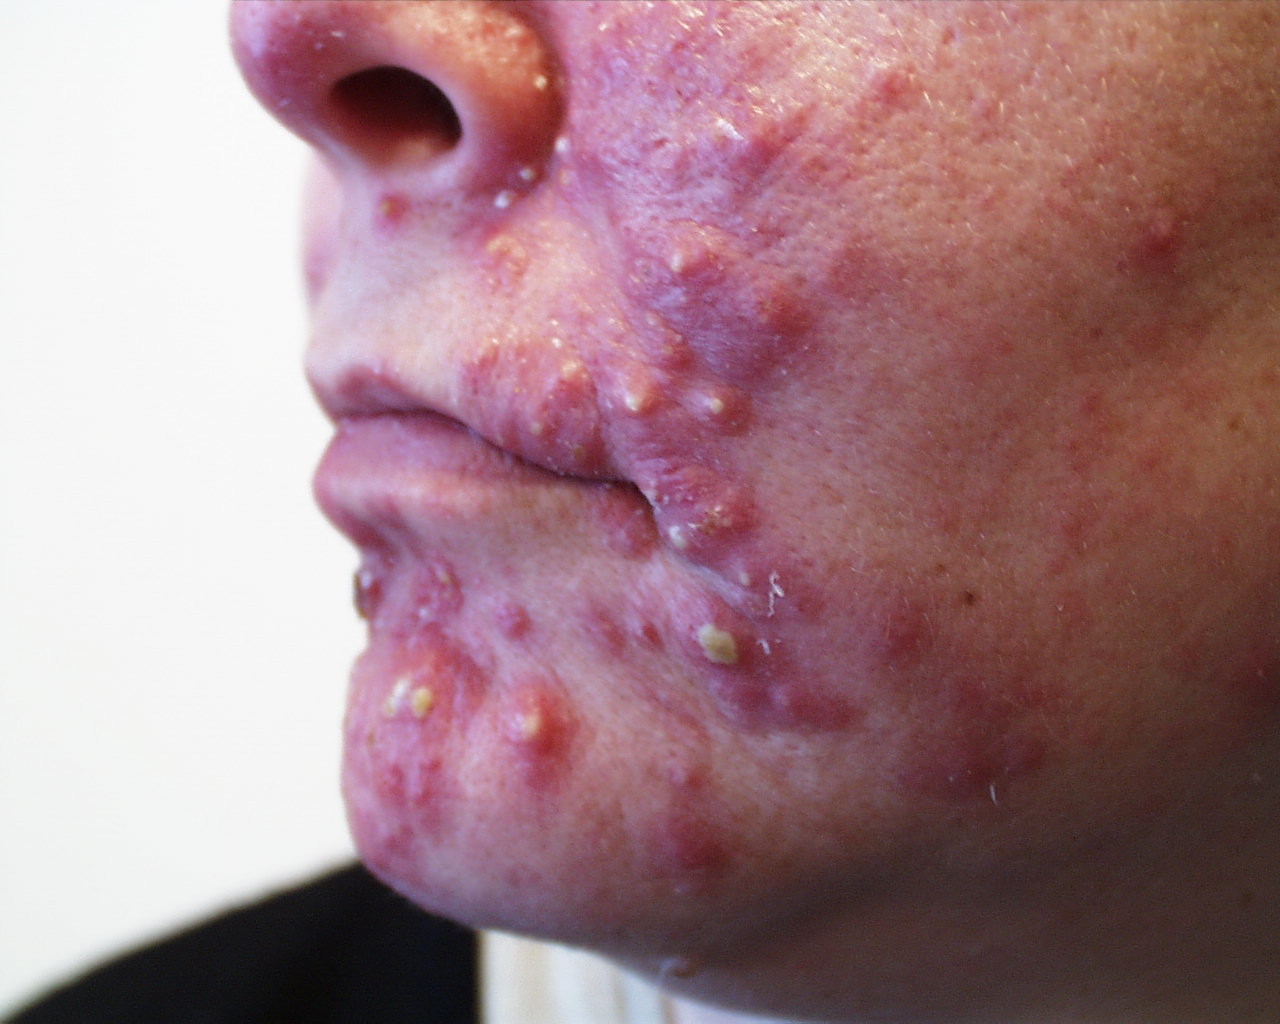 Antibiotic for acne adult